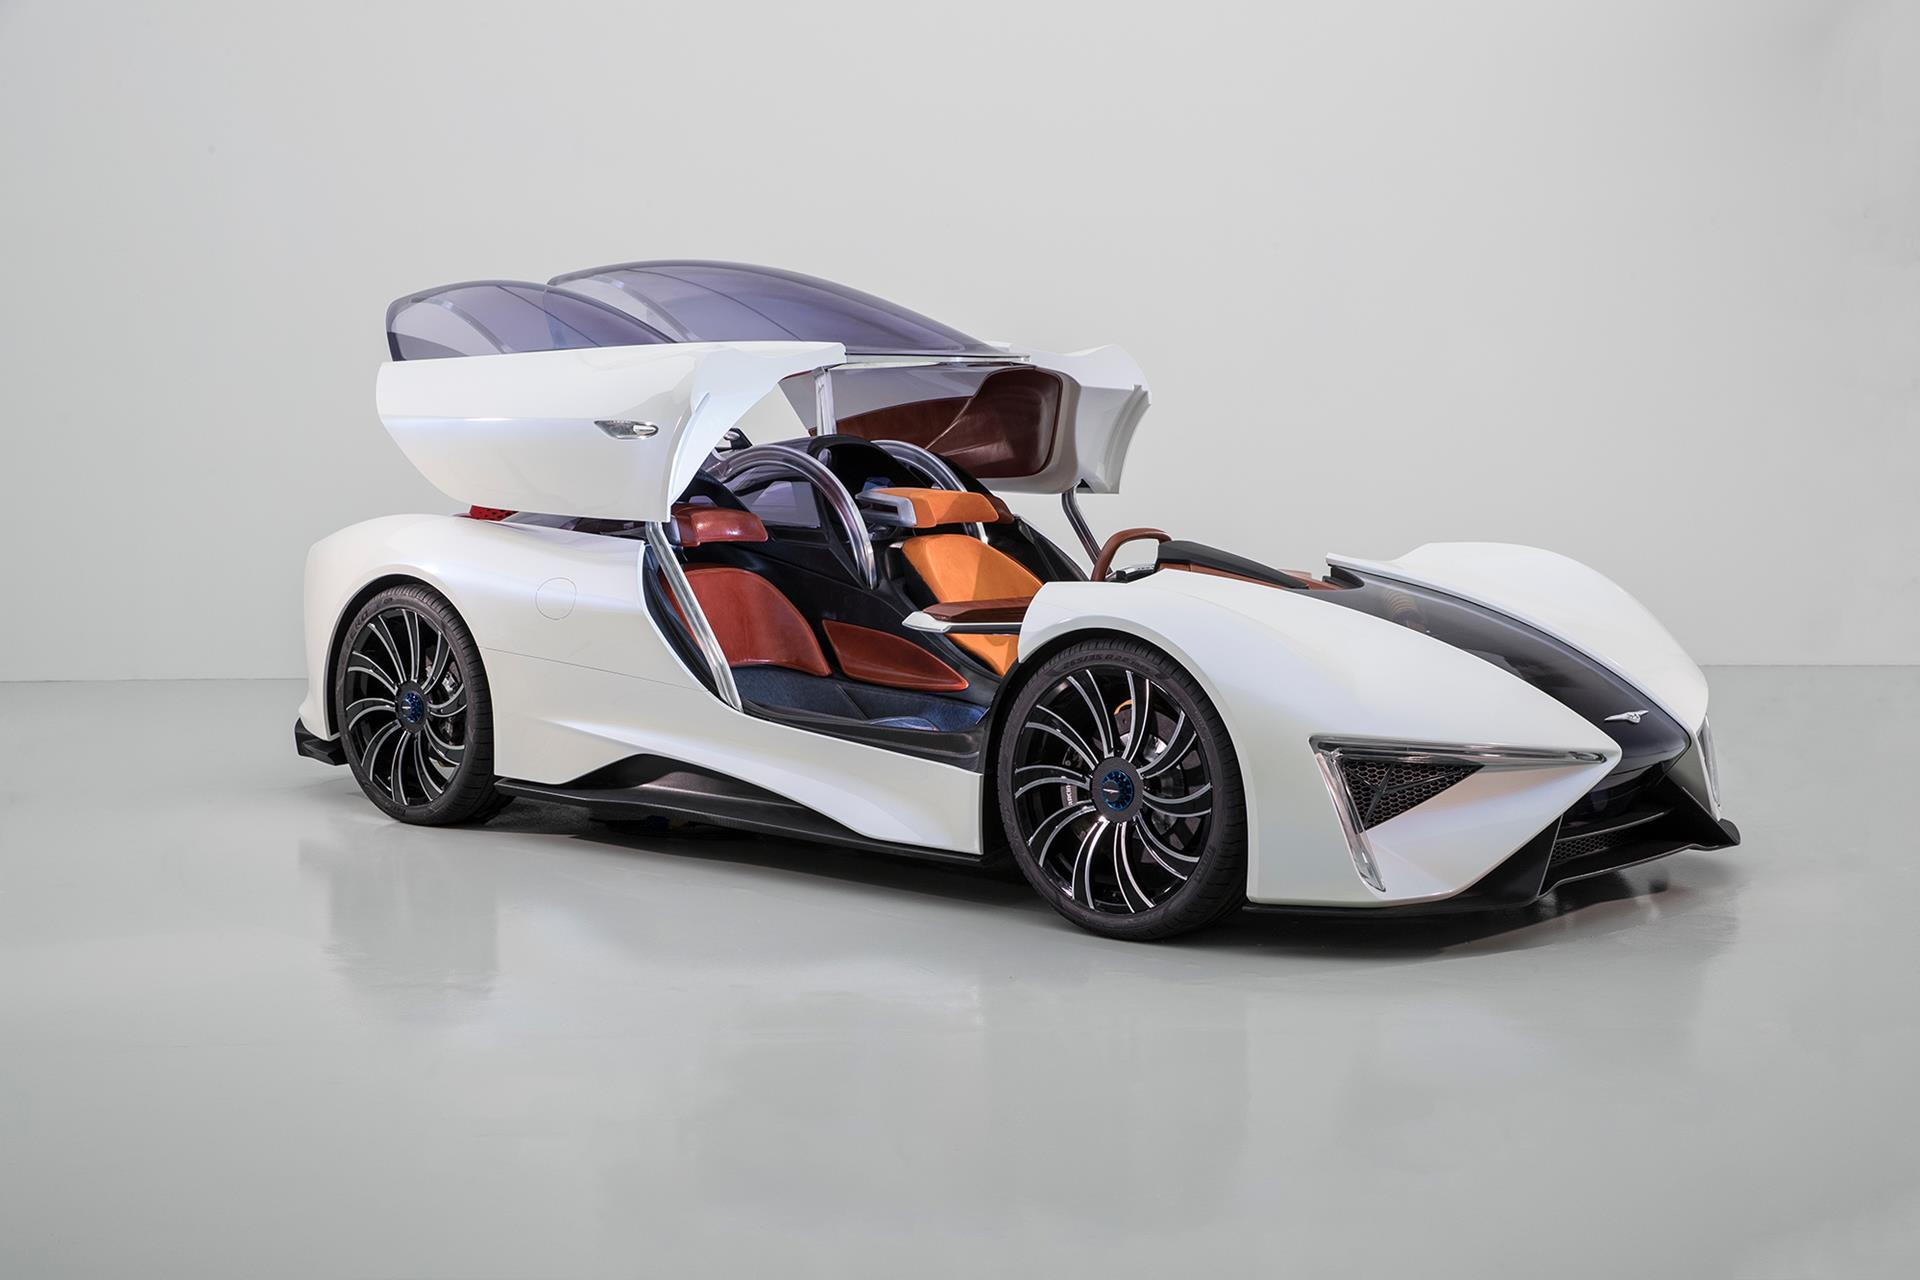 Techrules Ren SUPERCAR Concept pictures and wallpaper